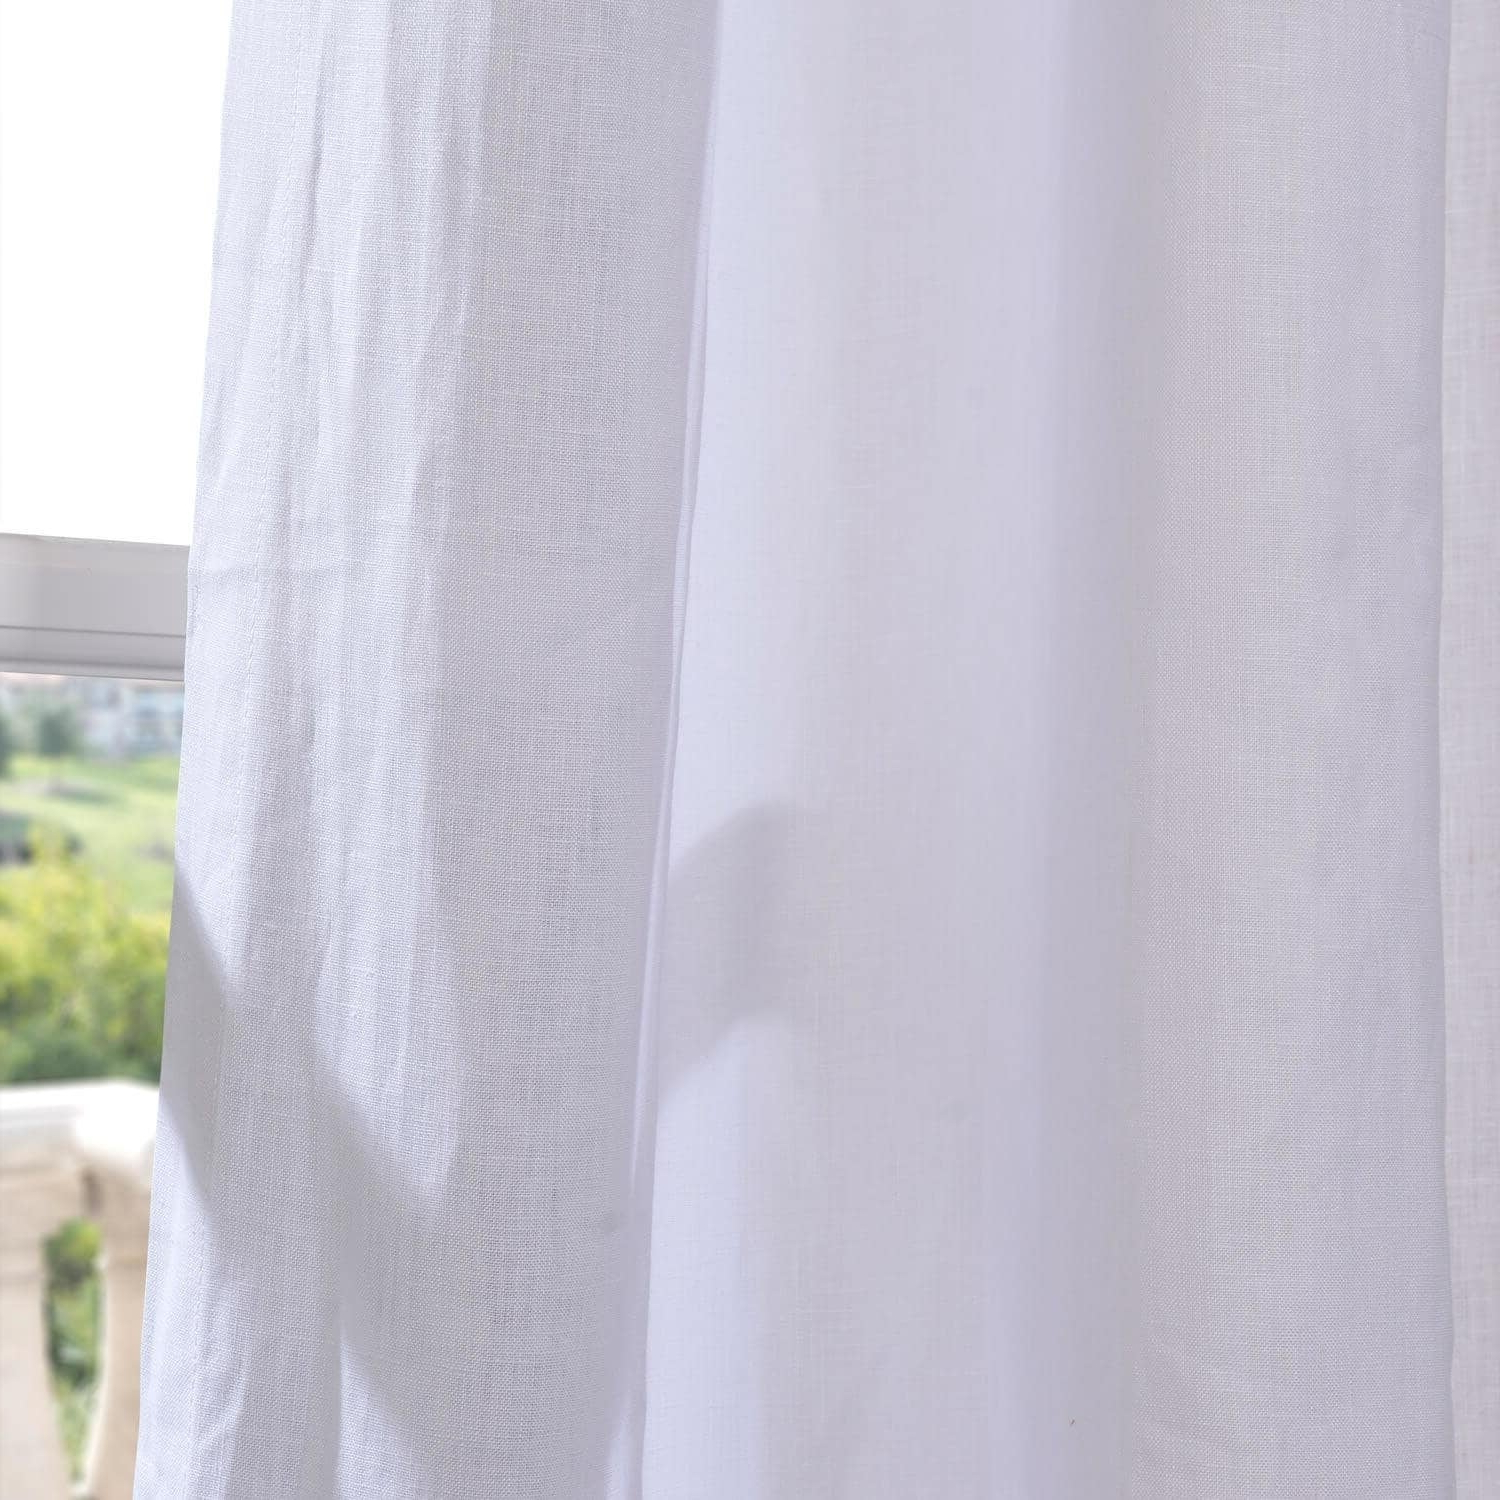 Newest Signature French Linen Curtain Panels Within Exclusive Fabrics Signature French Linen Curtain Panel (View 9 of 20)